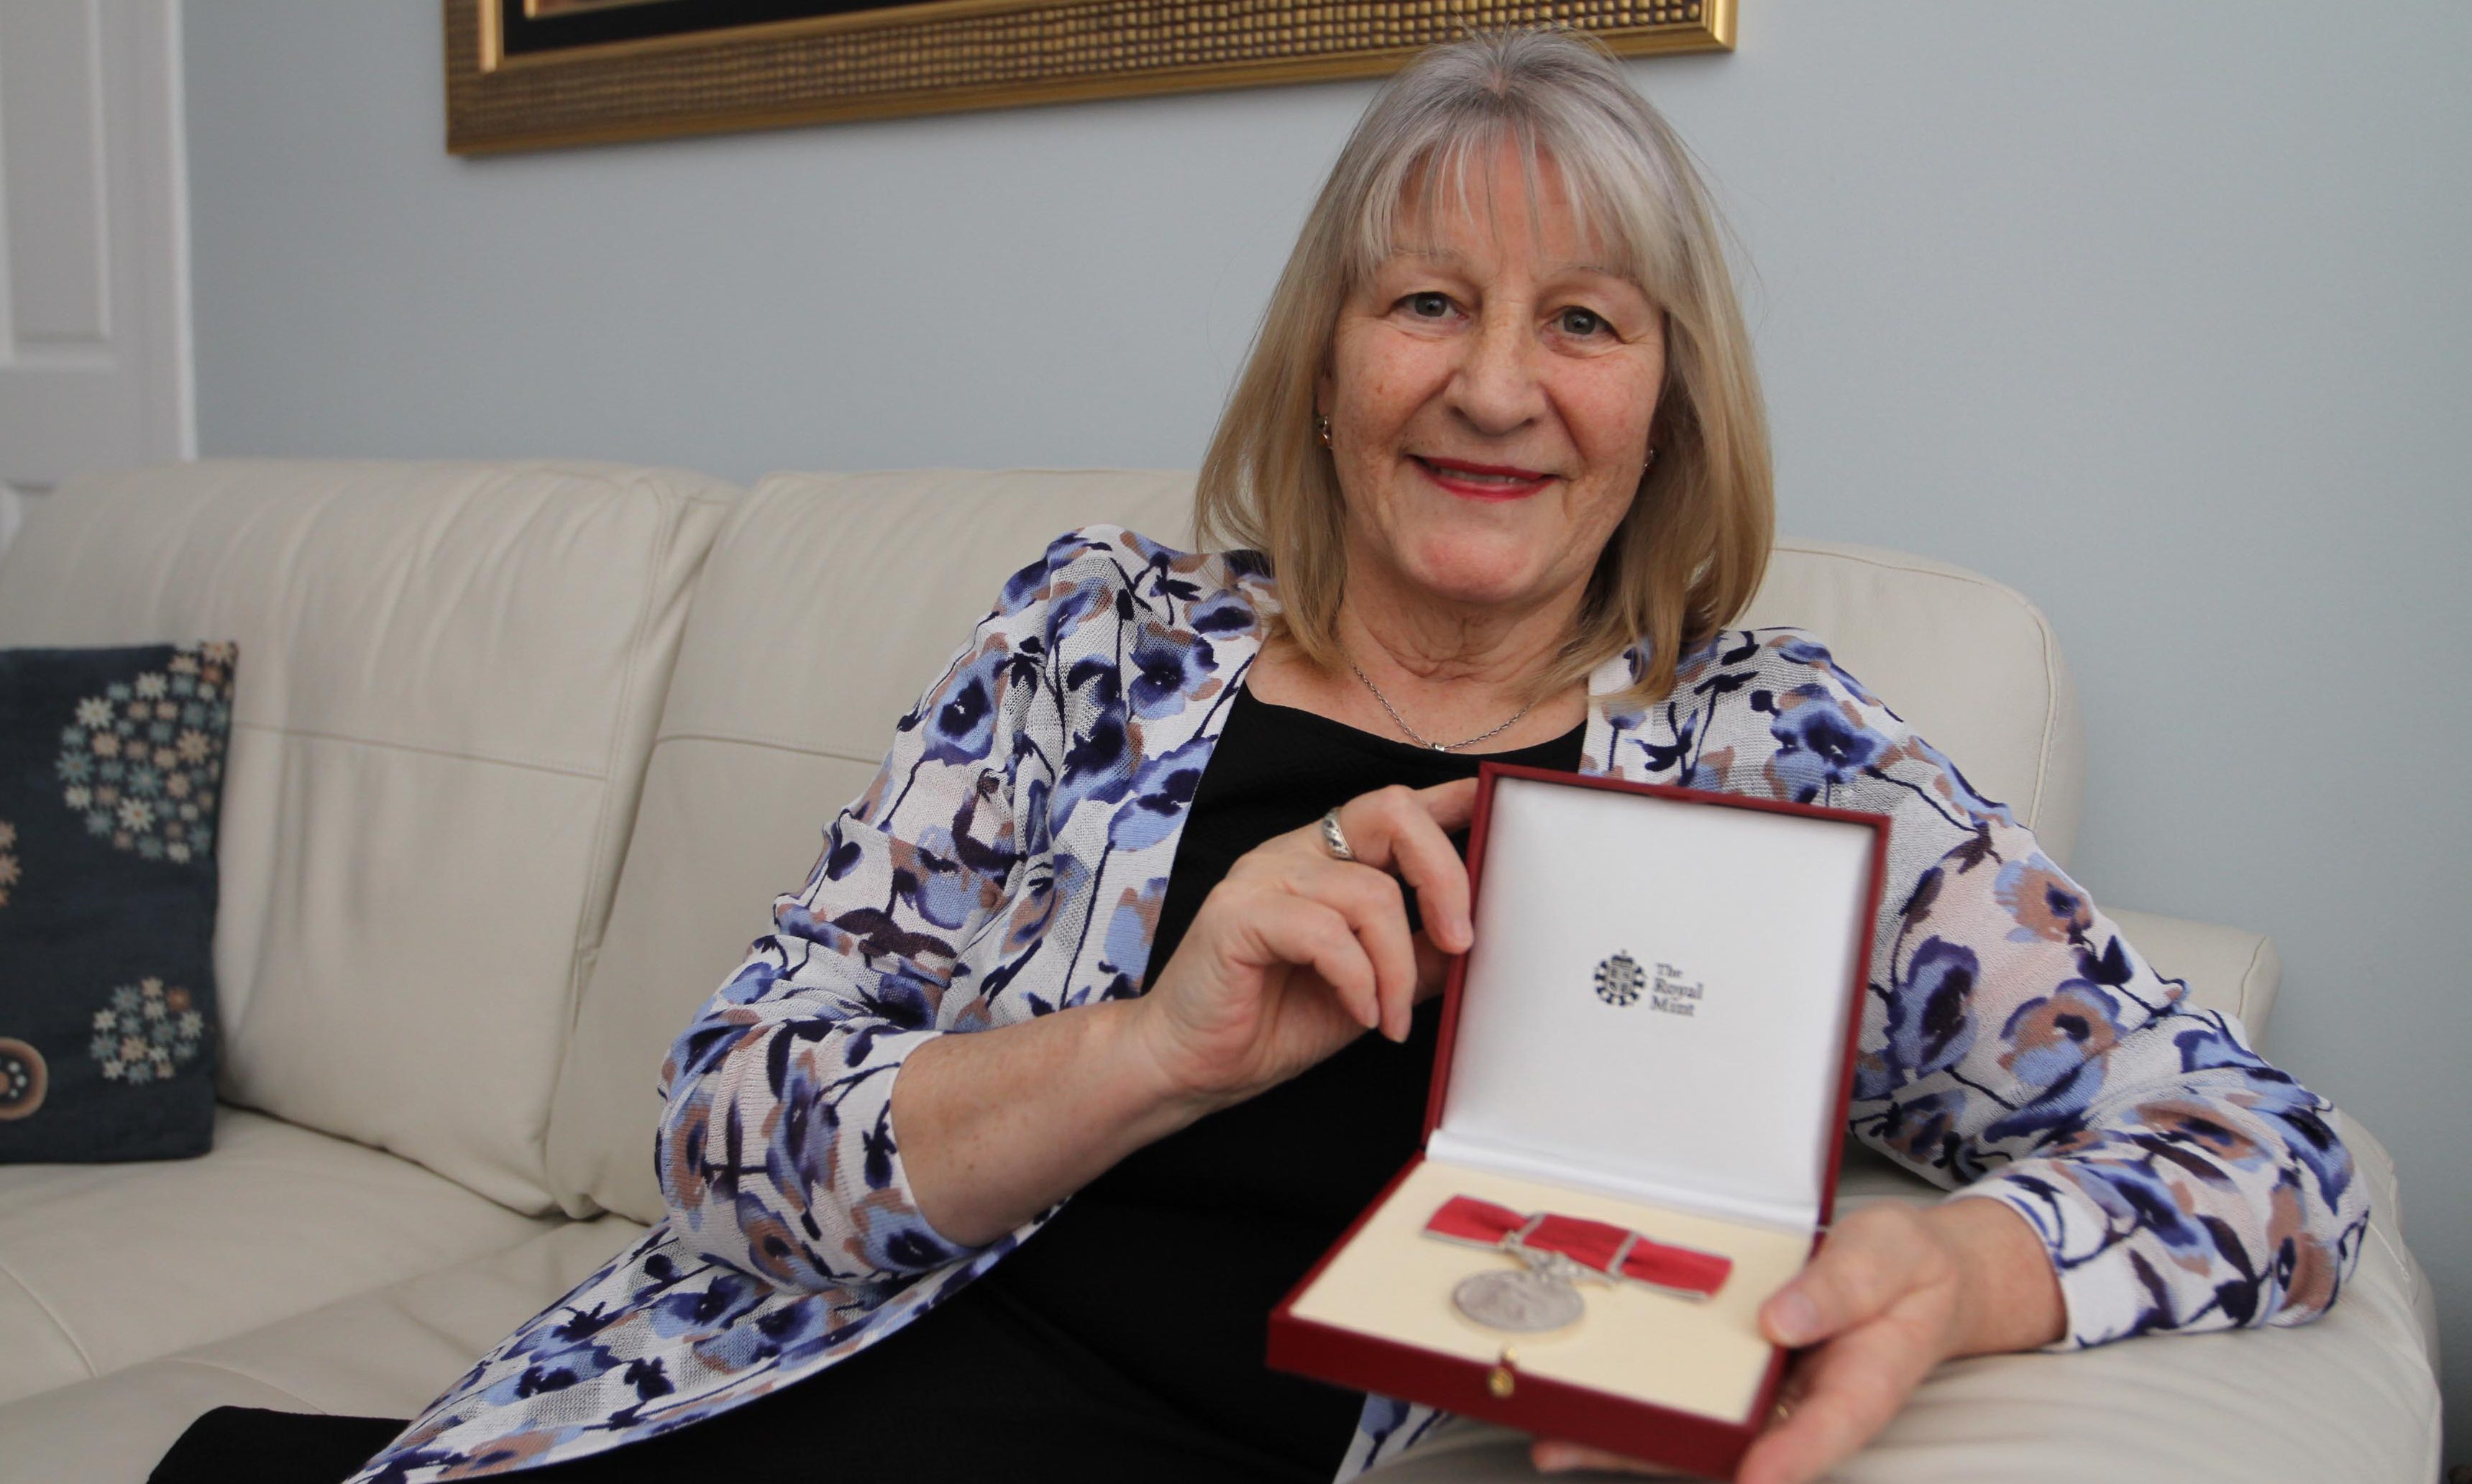 Irene at her Woodside home with her award.